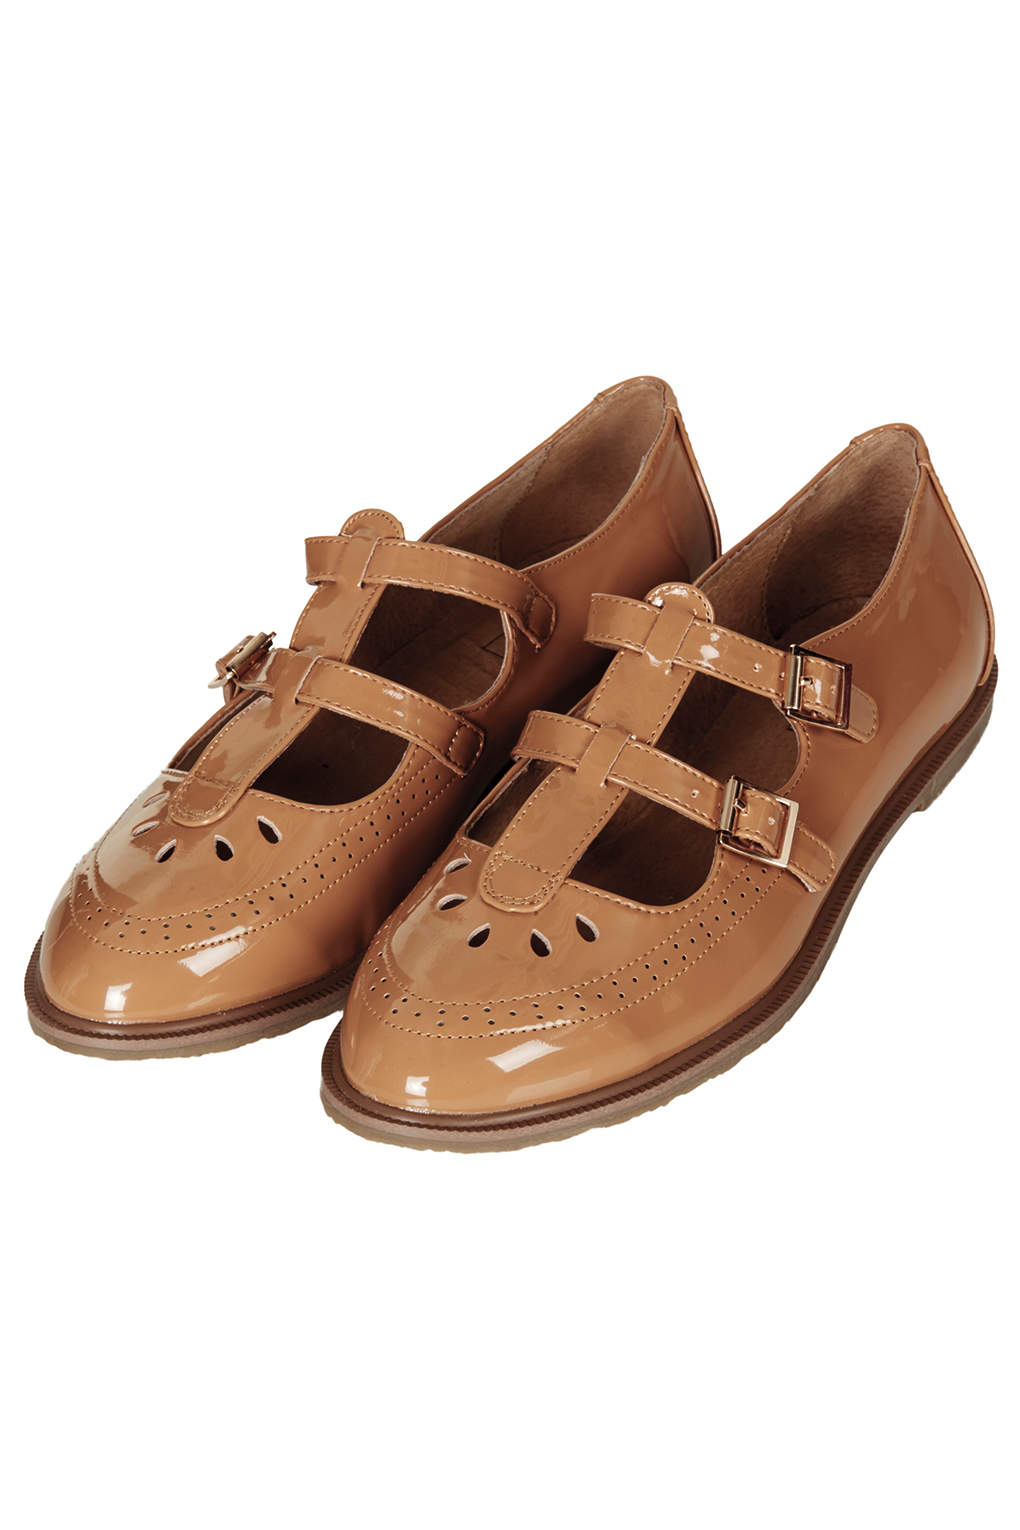 Topshop Margate Double Buckle Geek Shoes In Brown Lyst